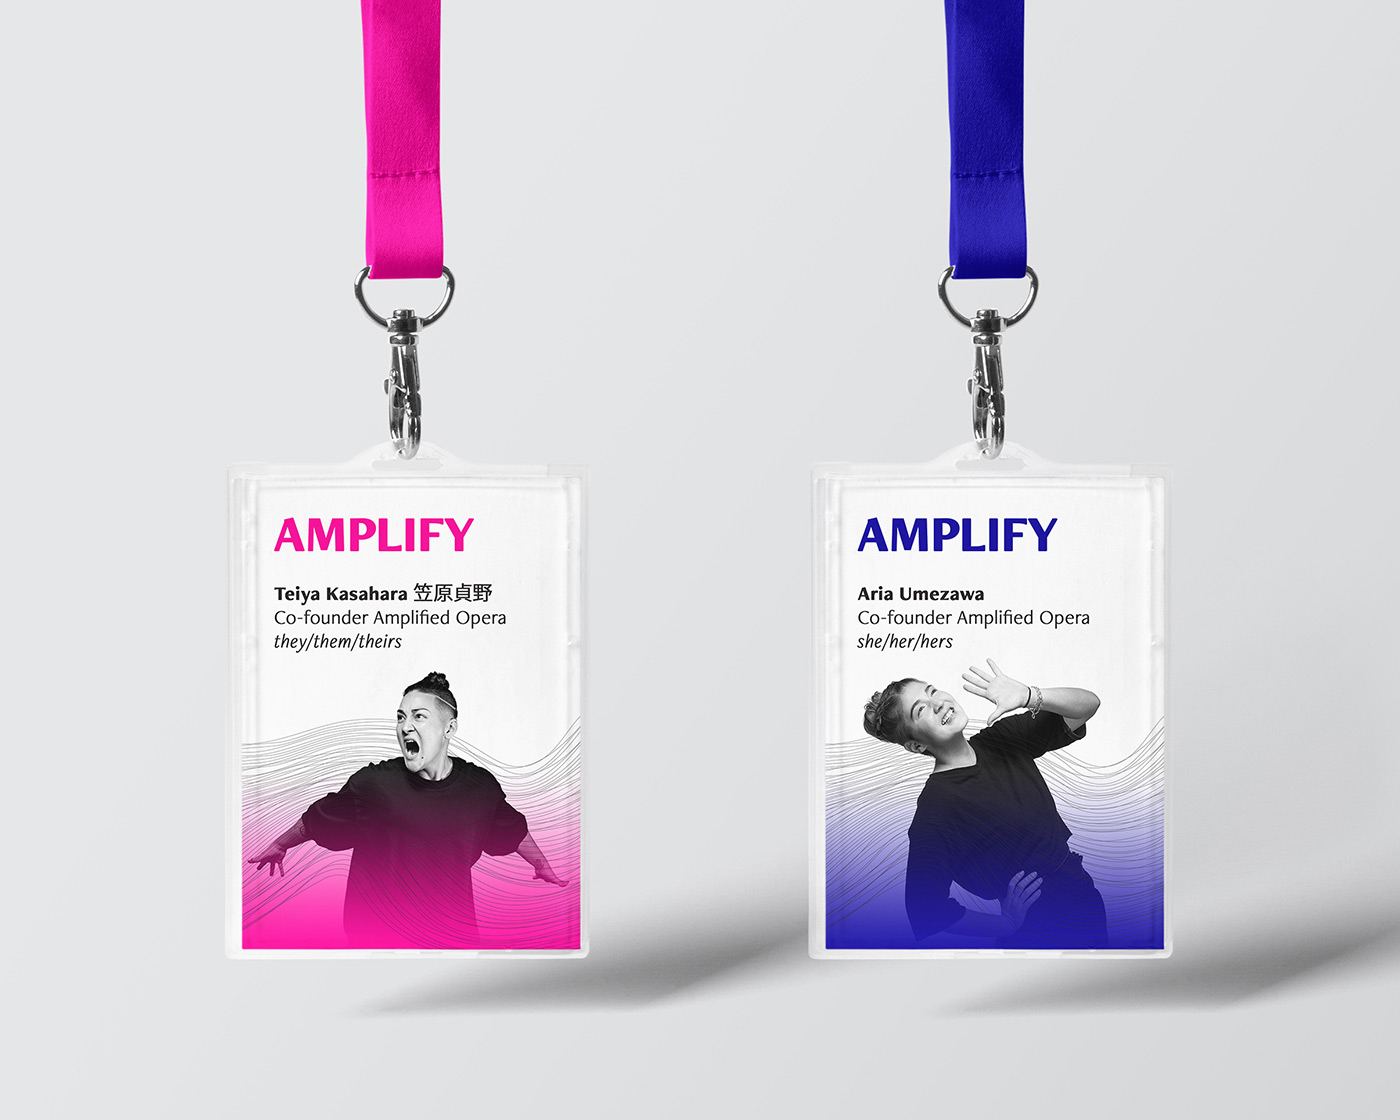 An image of two lanyards.